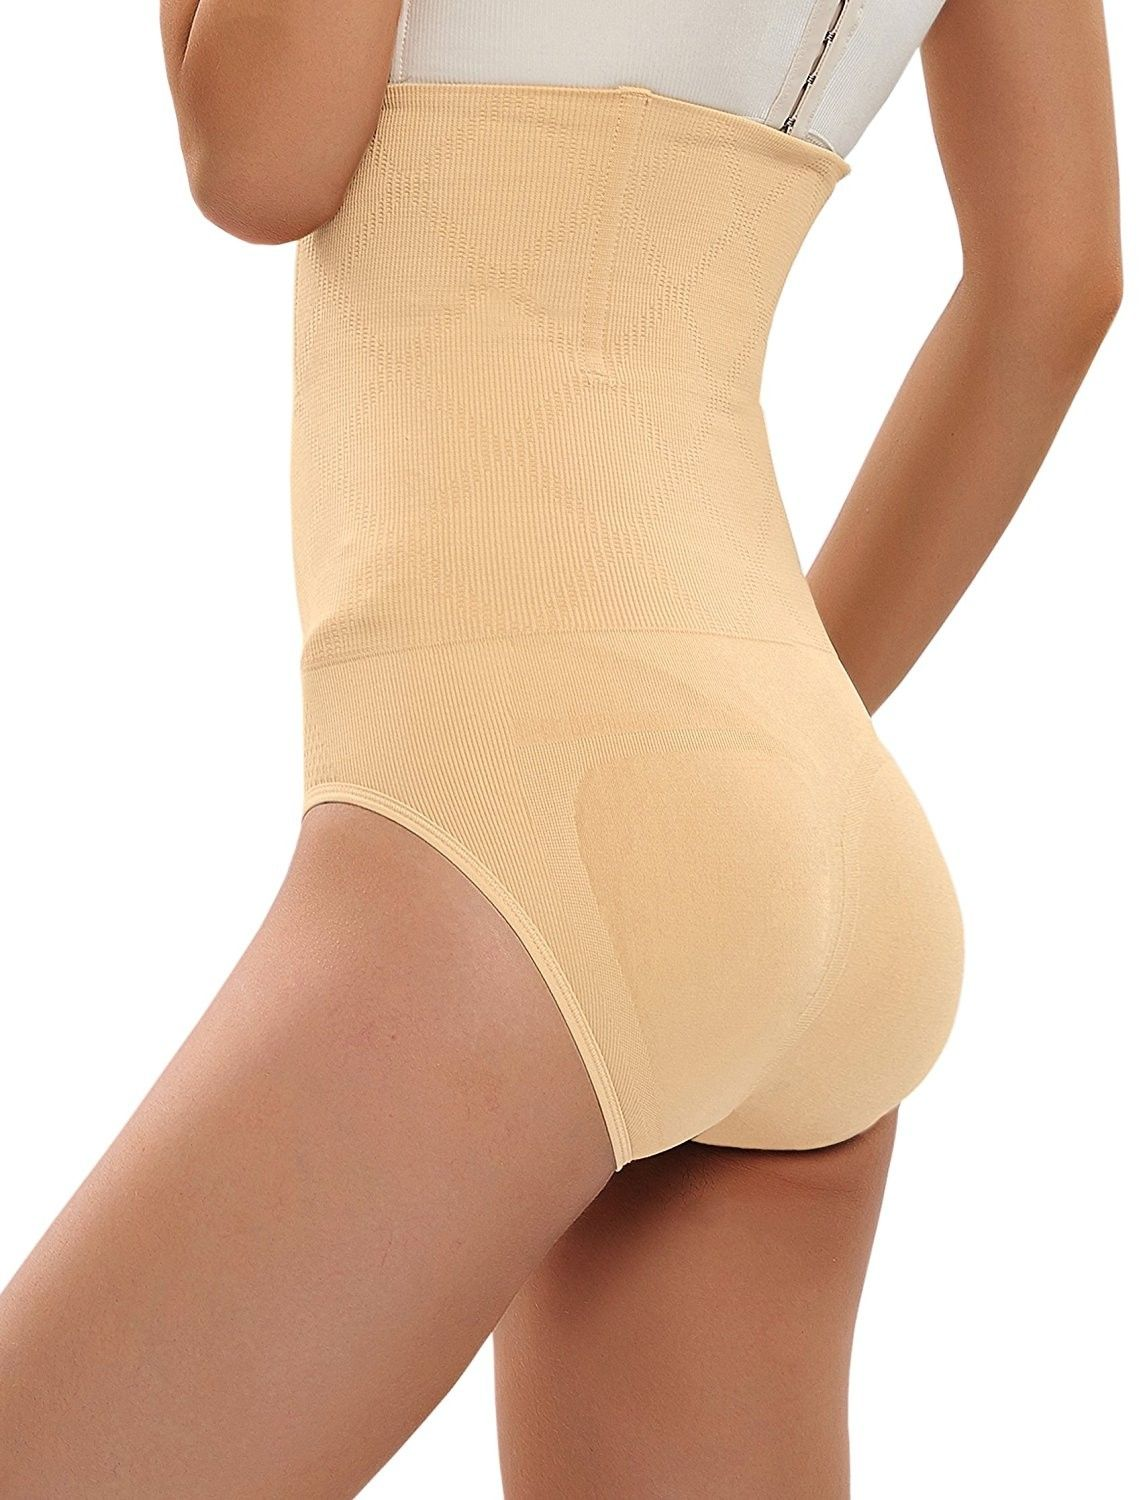 a1b686afd6e Women's Clothing, Lingerie, Sleep & Lounge, Lingerie, Shapewear,Women's  Shapewear Hi-Waist Brief Firm Control Panty Belly Trainer Slimmer - Nude ...